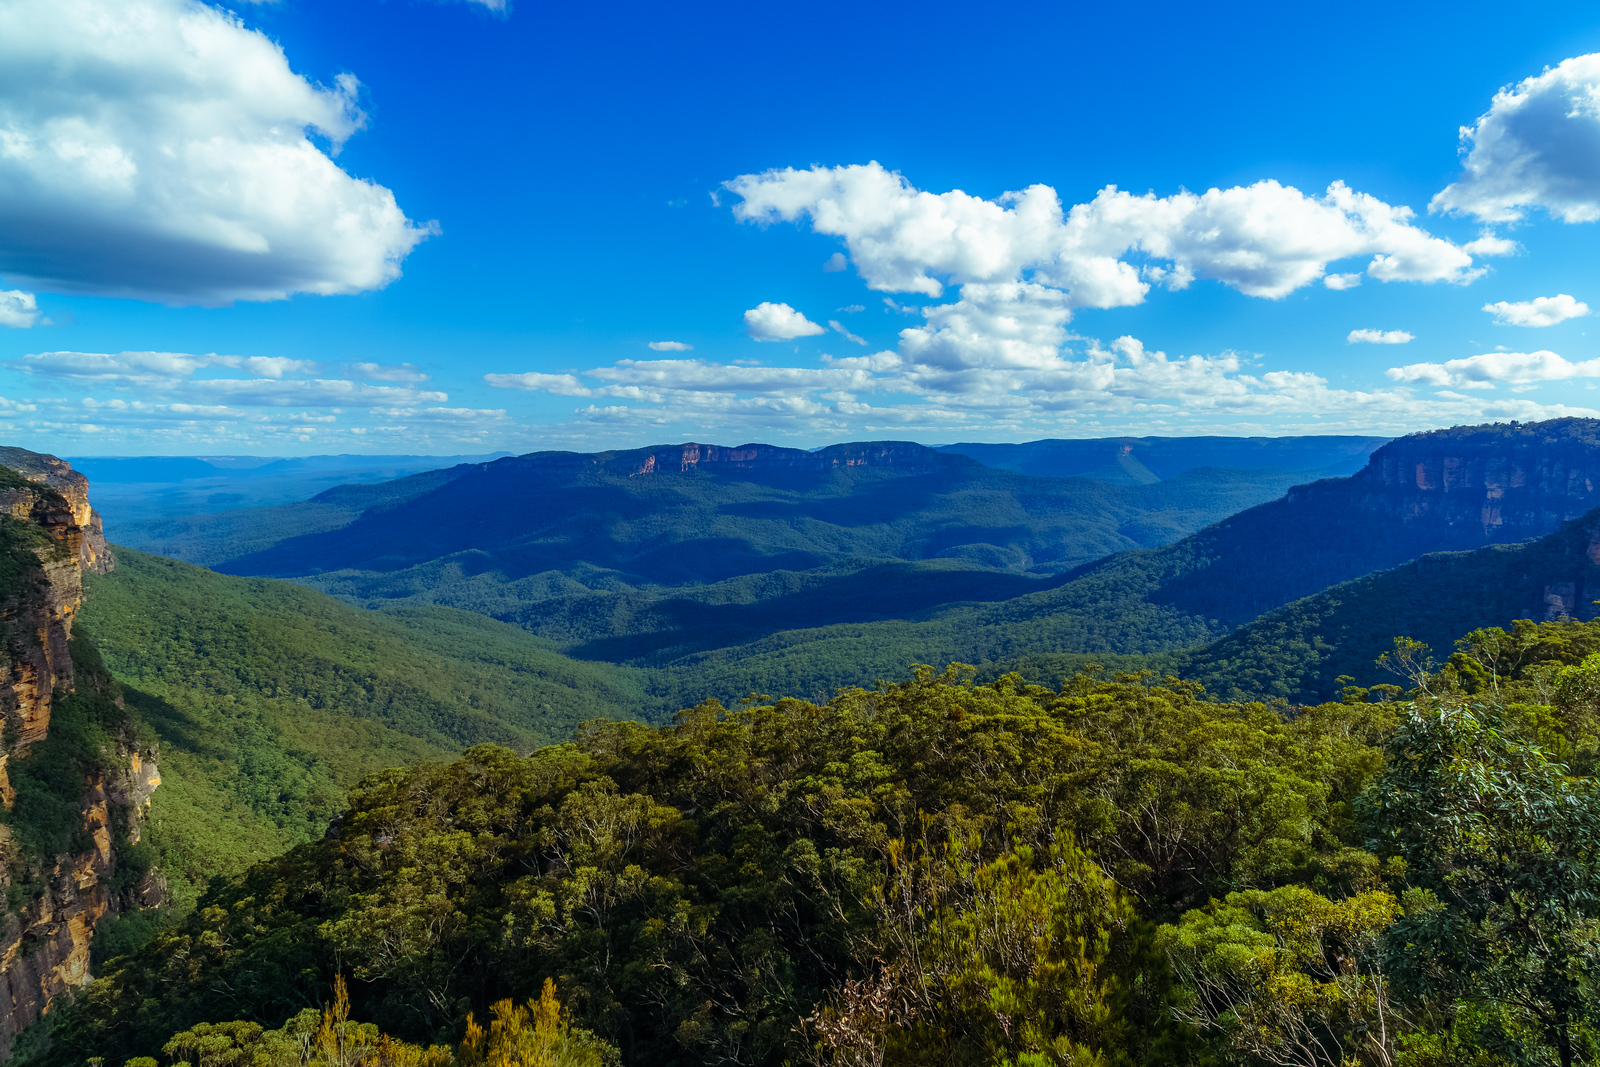 Blue Mountains National Park